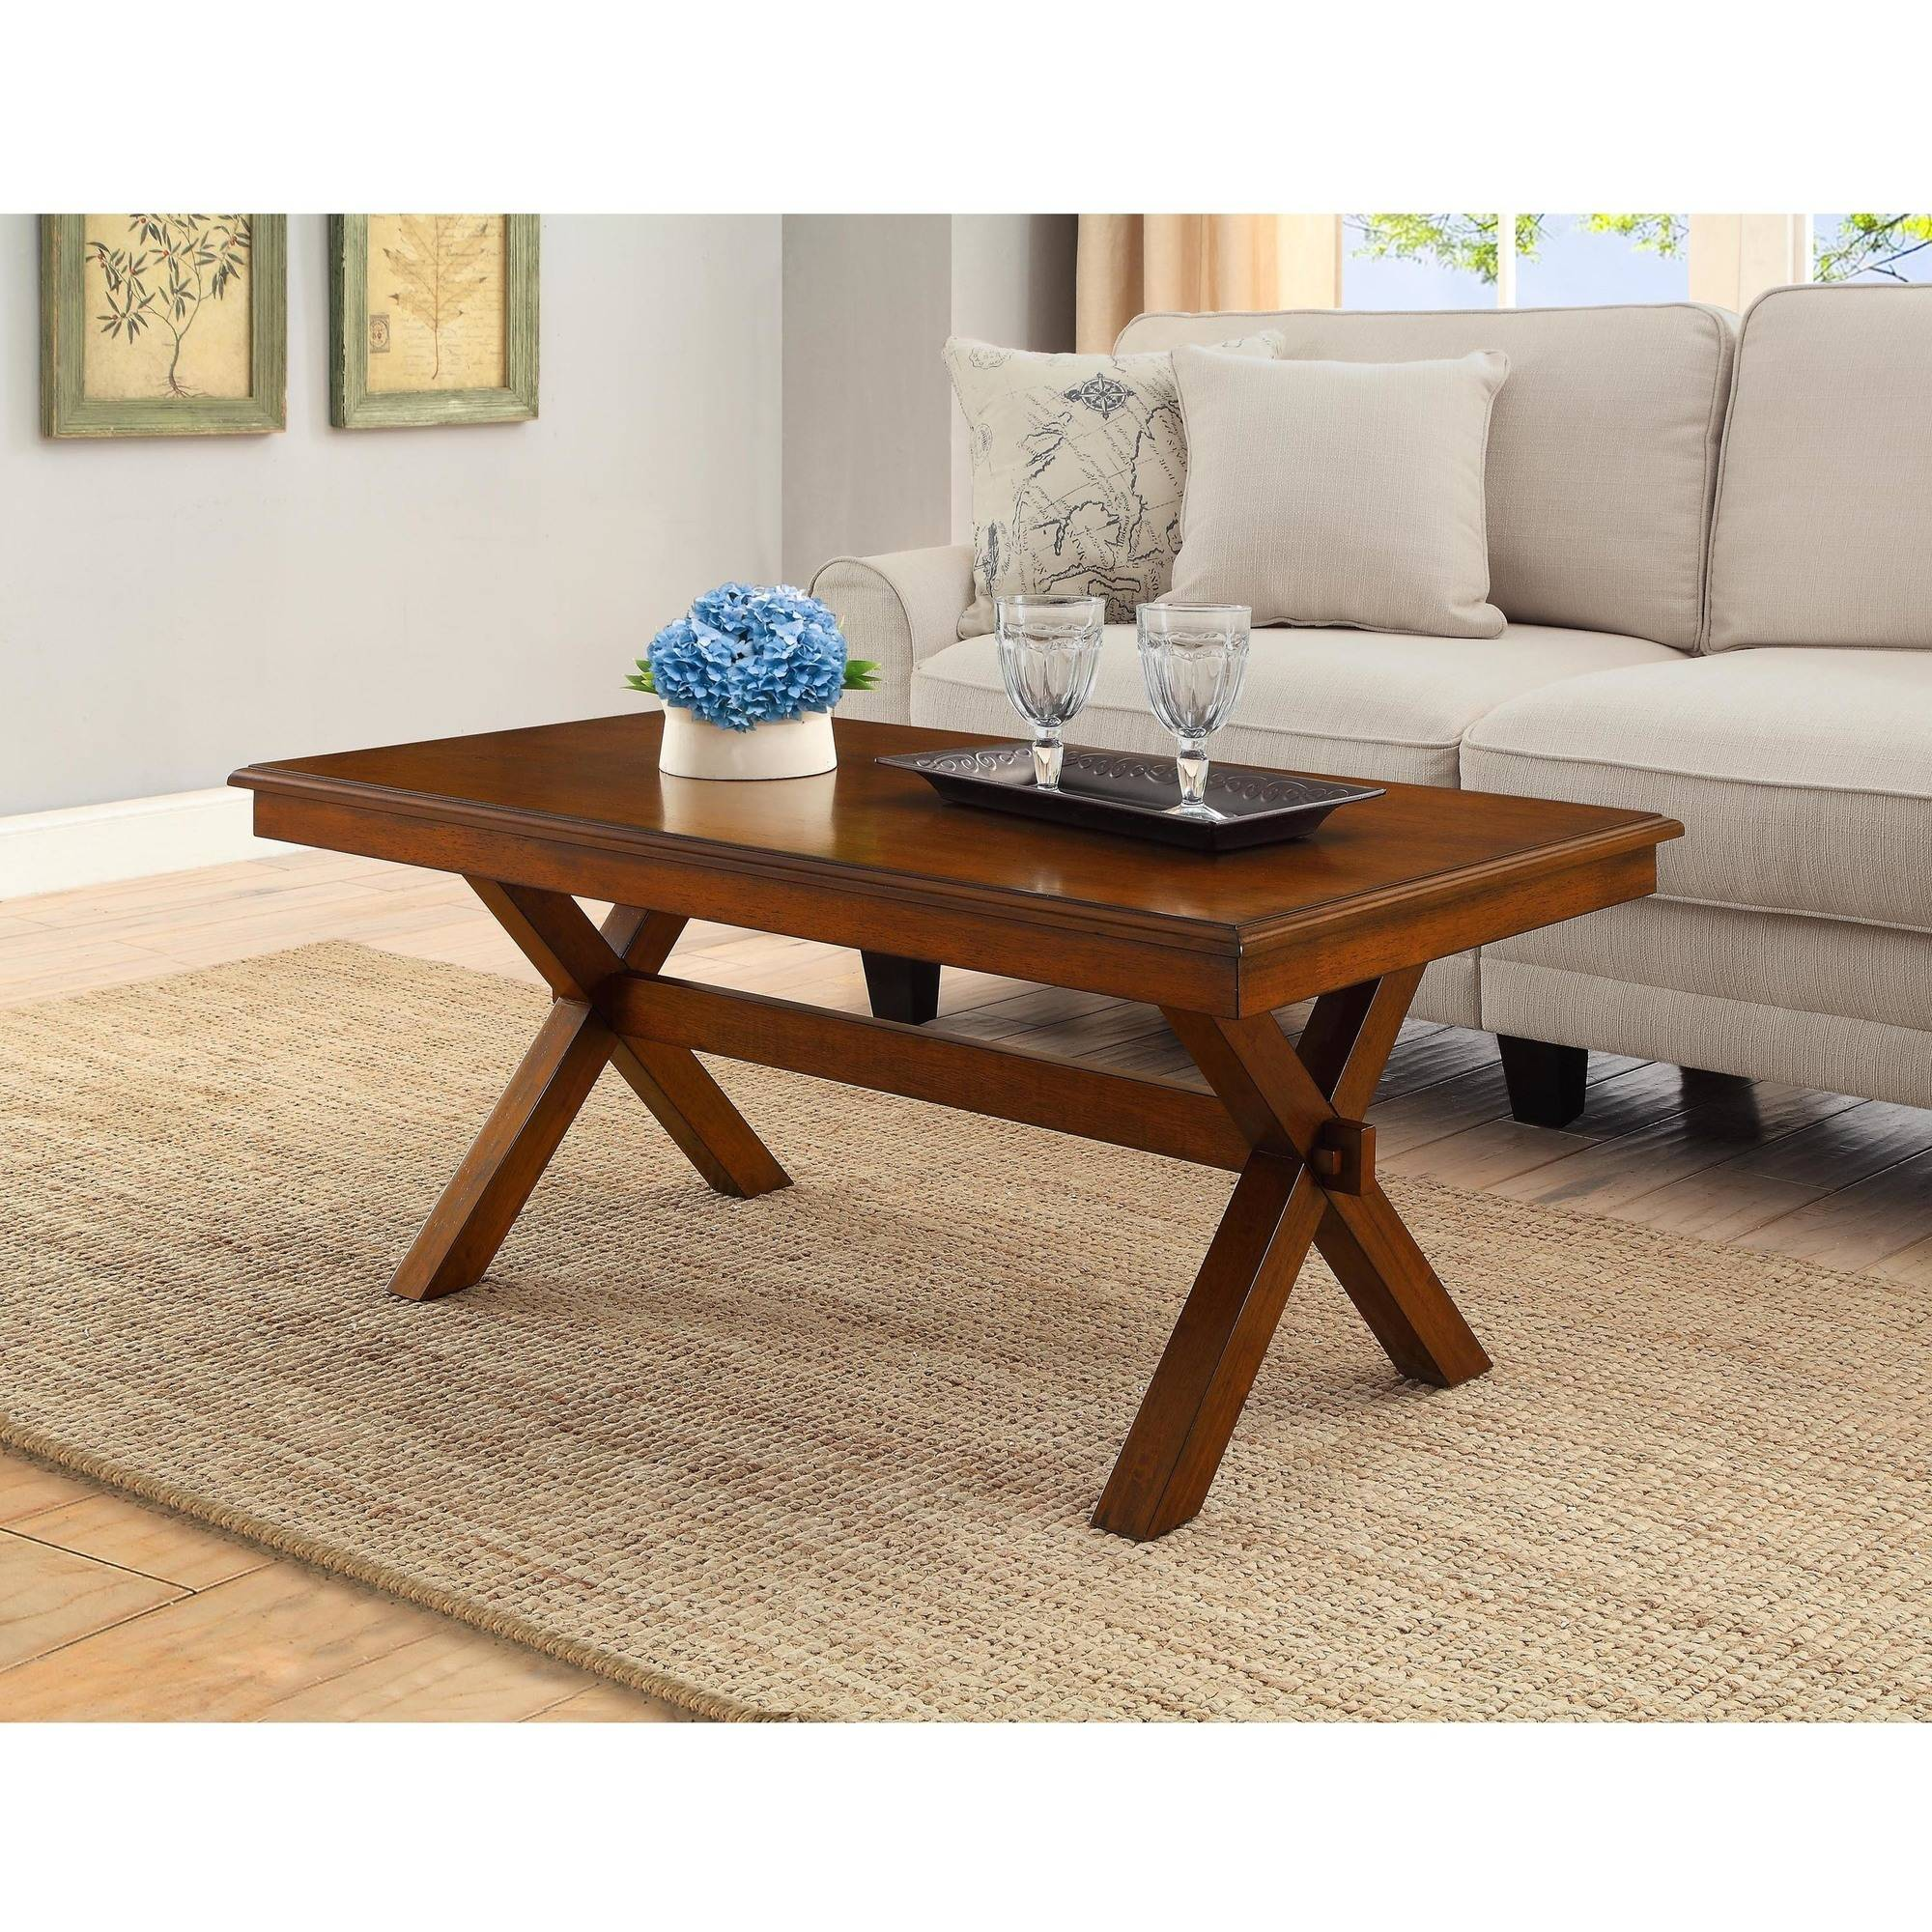 Better Homes and Gardens Maddox Crossing Coffee Table, Cognac by WHALEN LIMITED